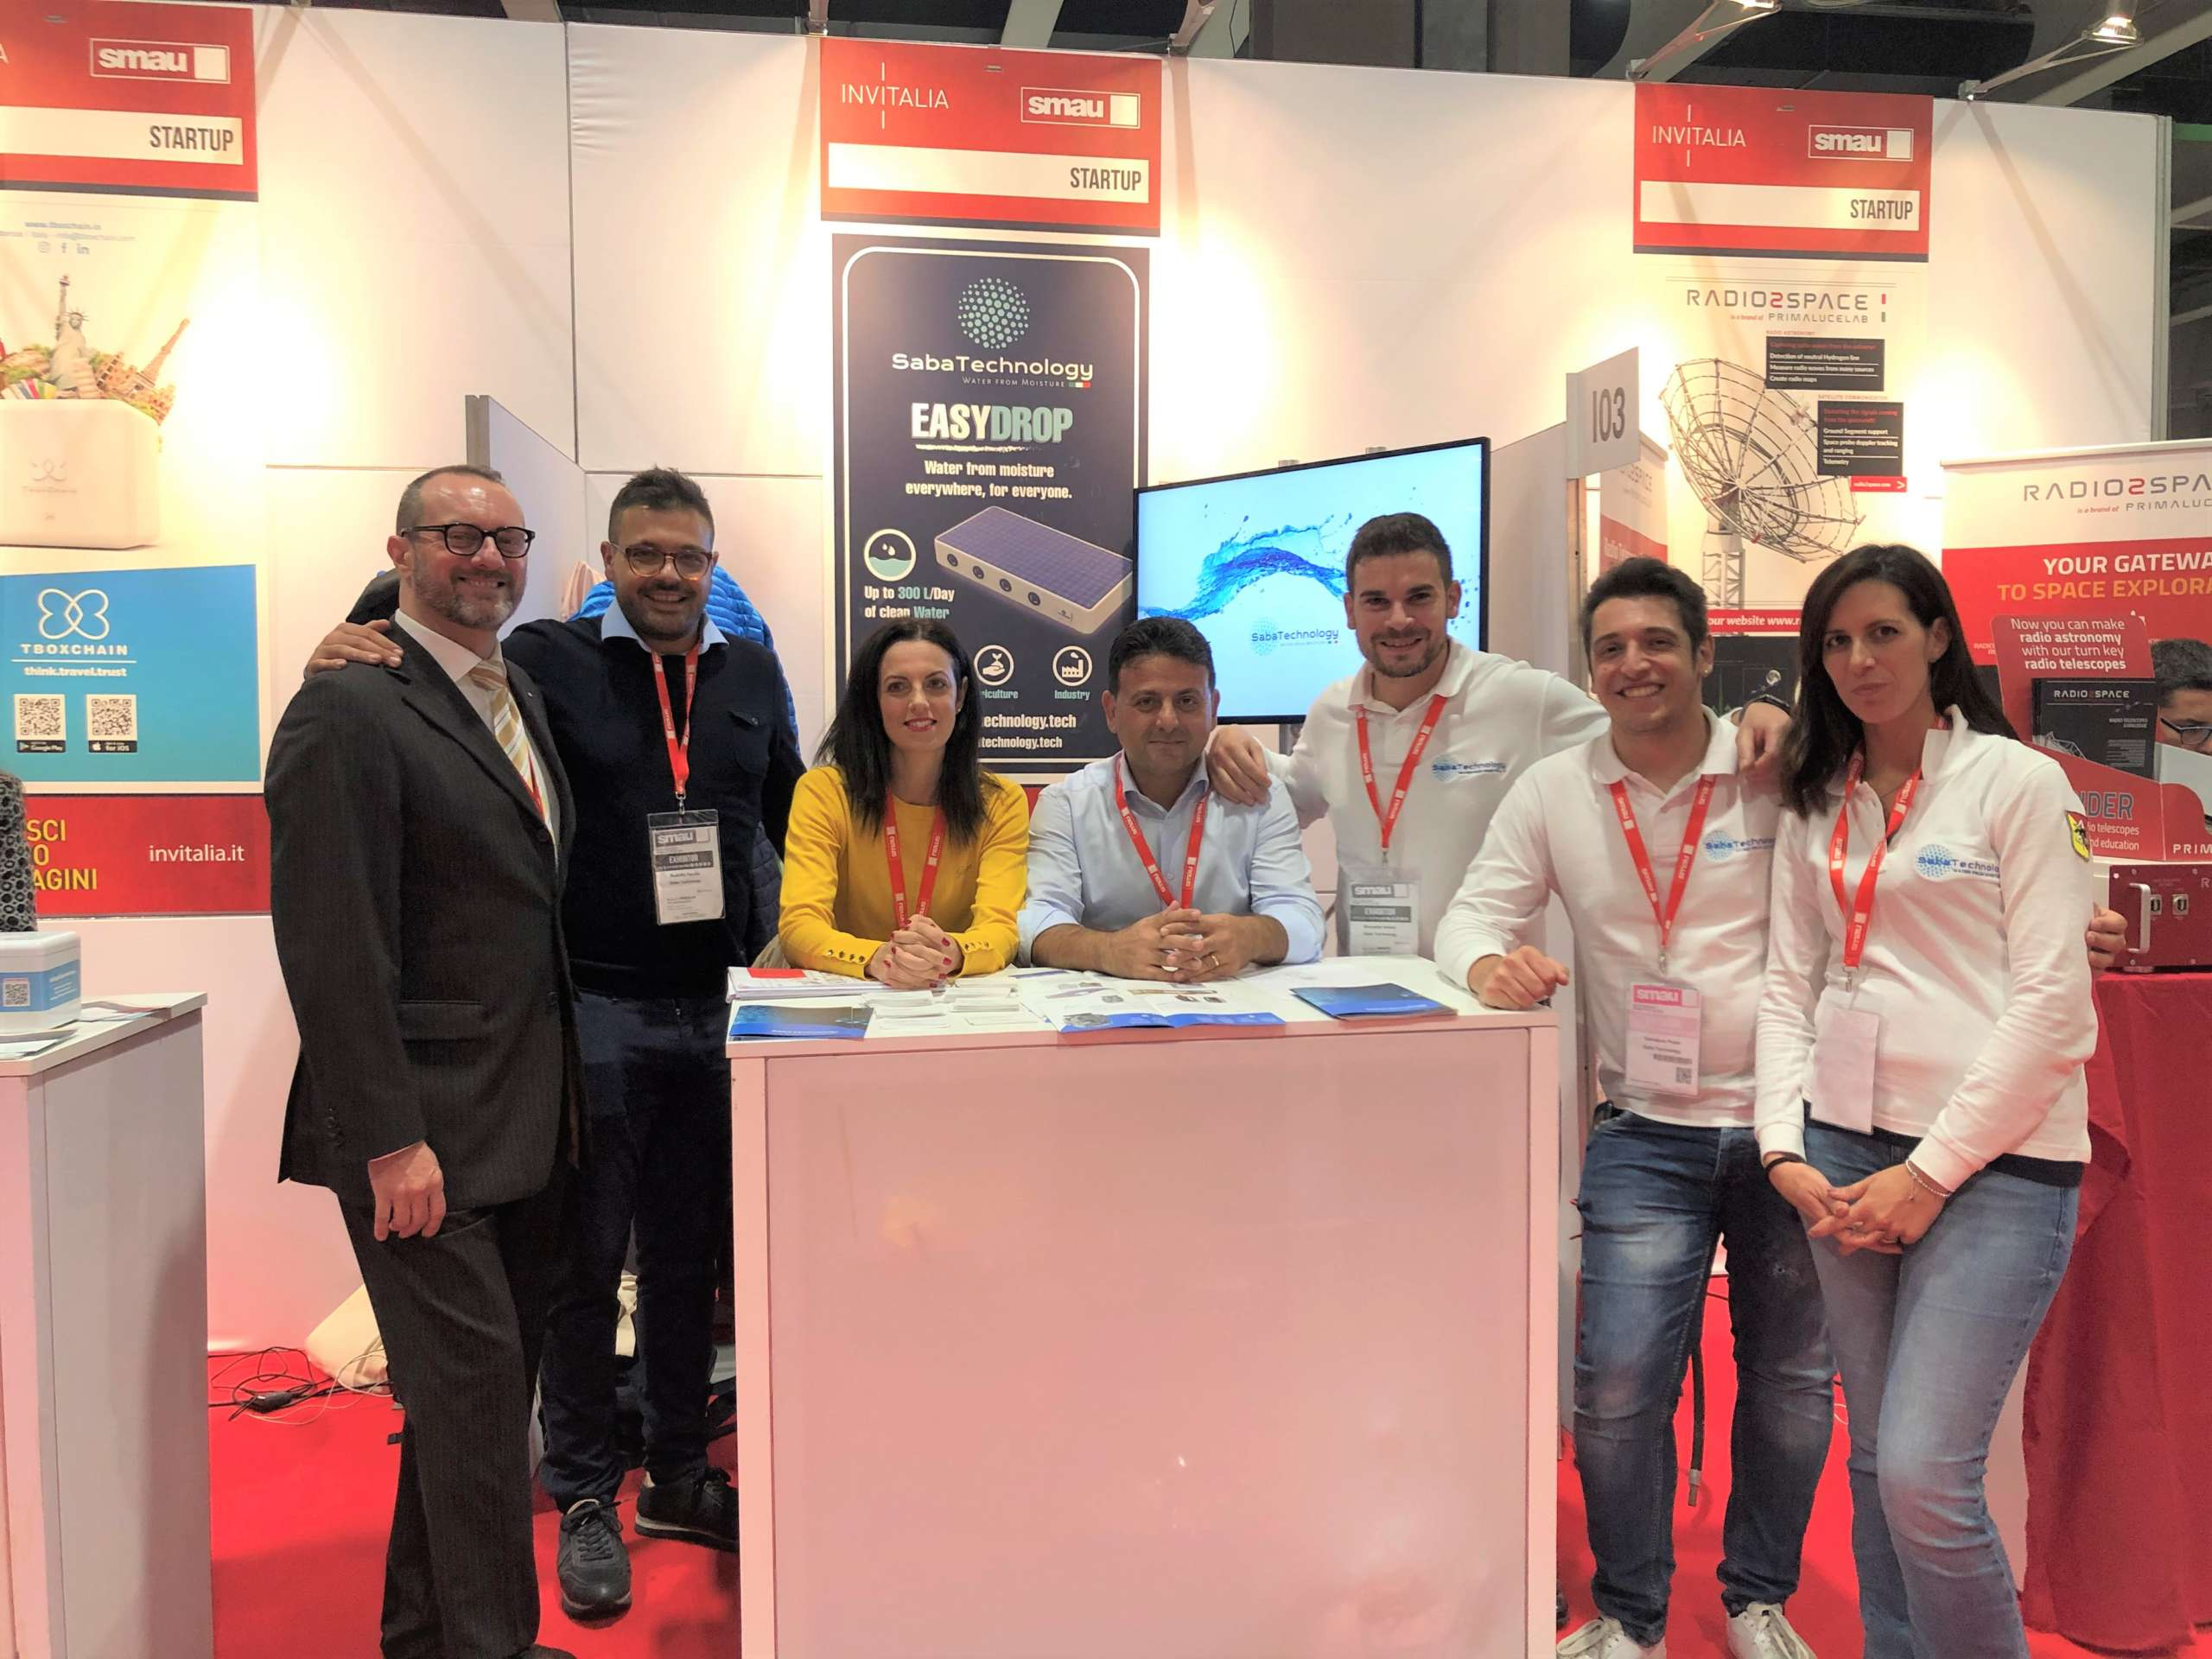 Smau Milano 2019 - Saba Technology